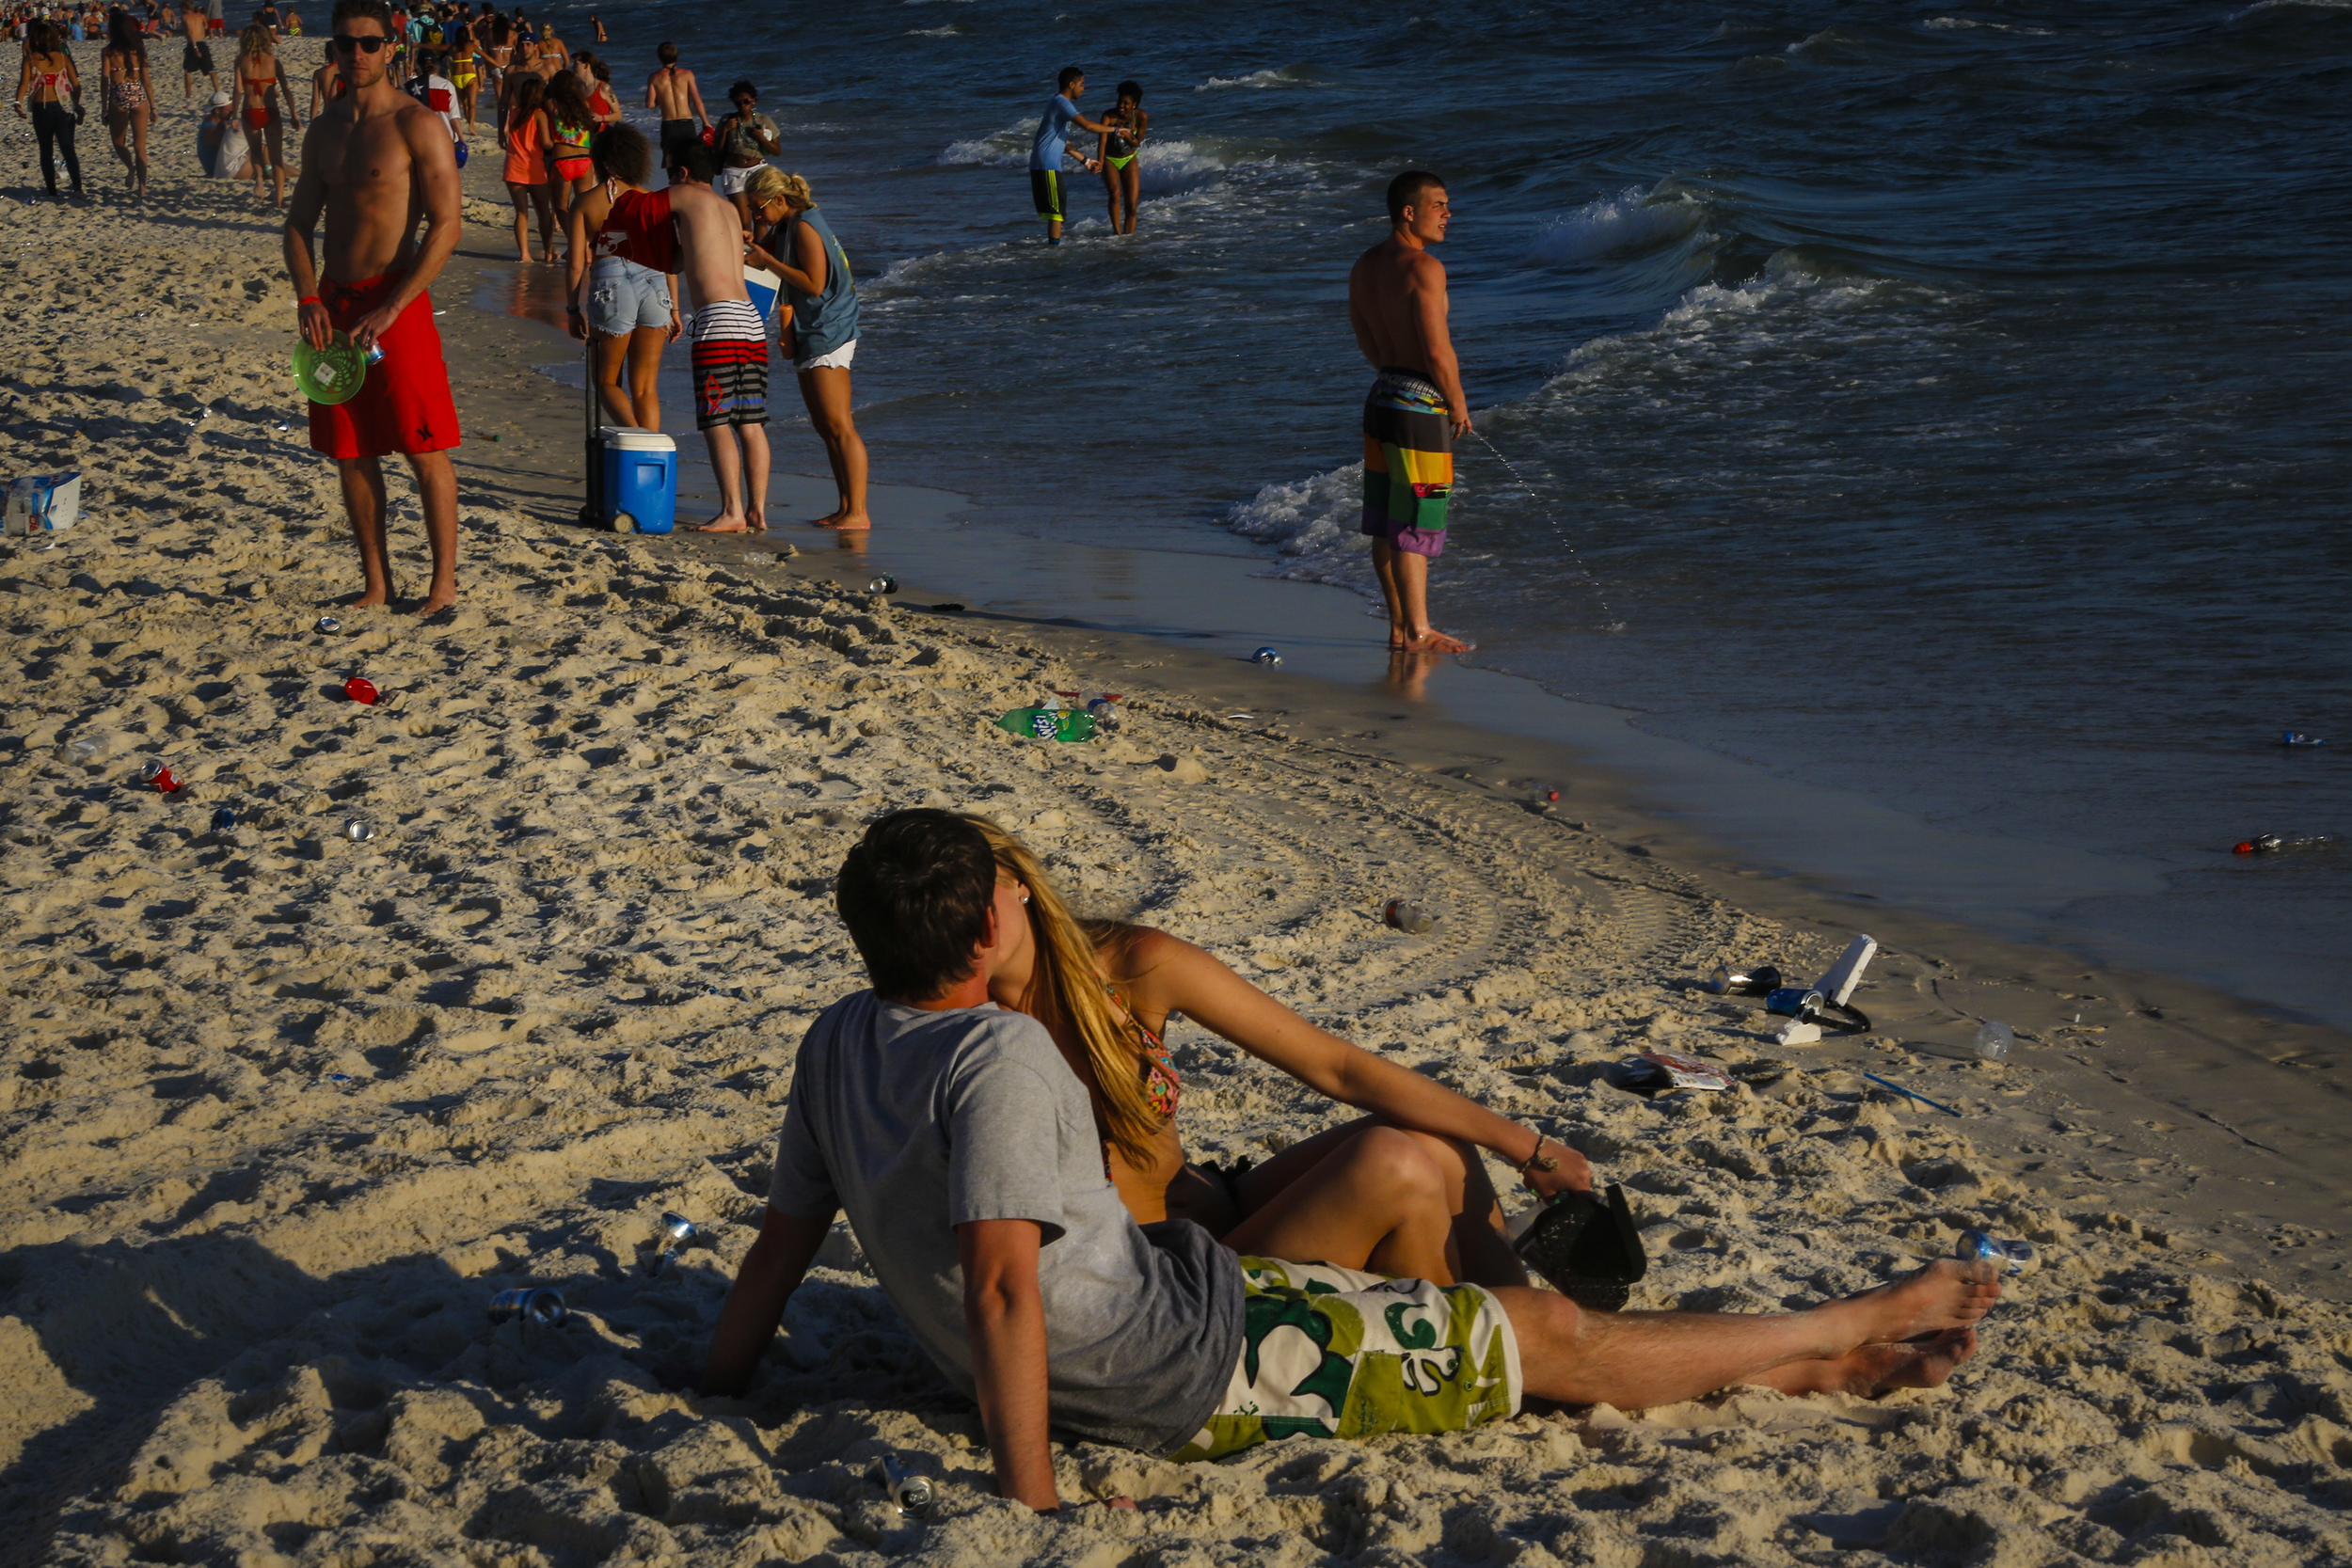 Spring breakers make out, party and urinate into the ocean.